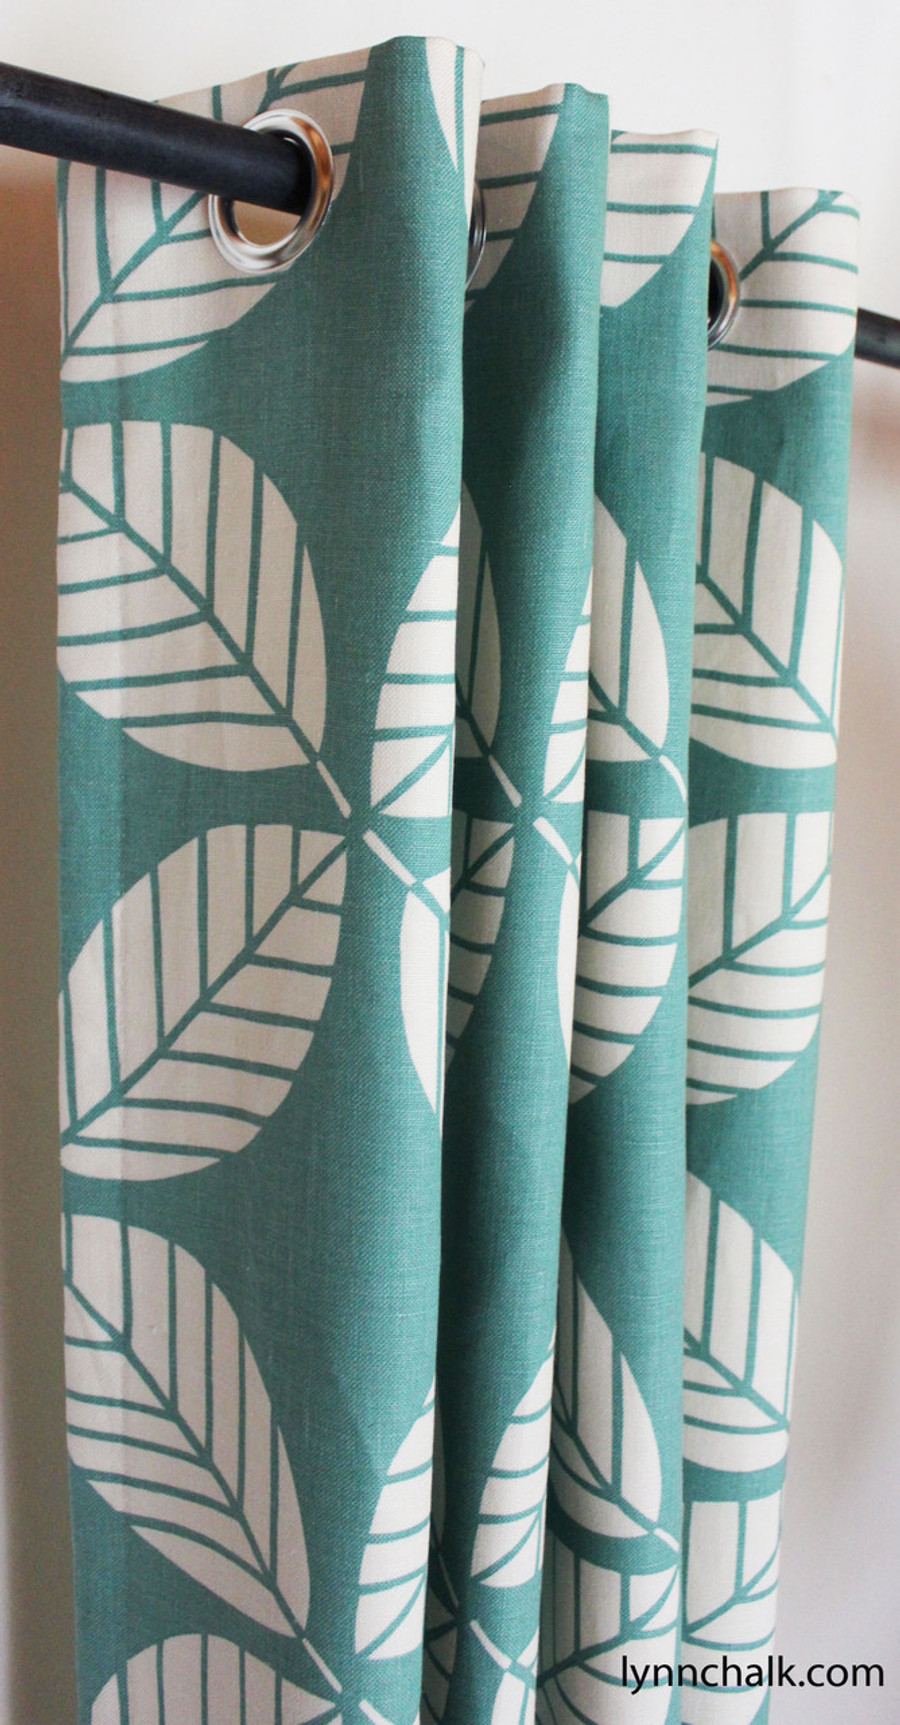 Custom Grommet Drapes by Lynn Chalk in Duralee 42190-23 Peacock